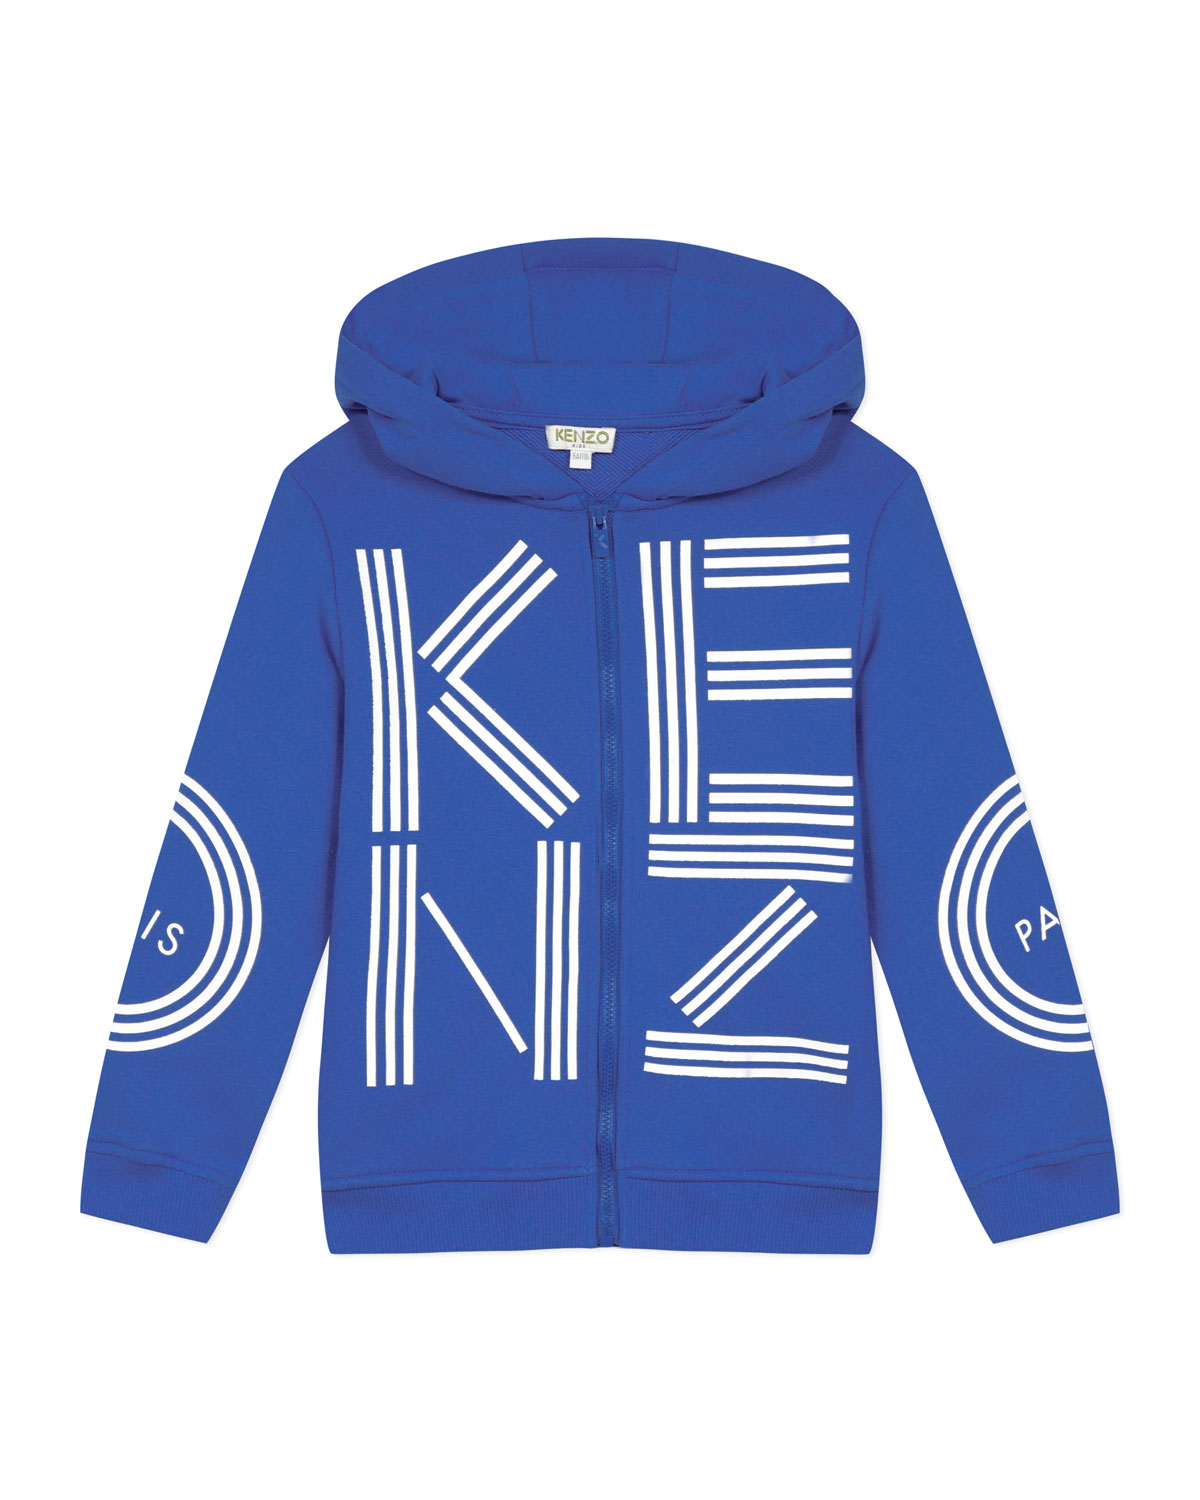 Kenzo Boy's Logo Print Zip-Front Hooded Jacket, Size 8-12